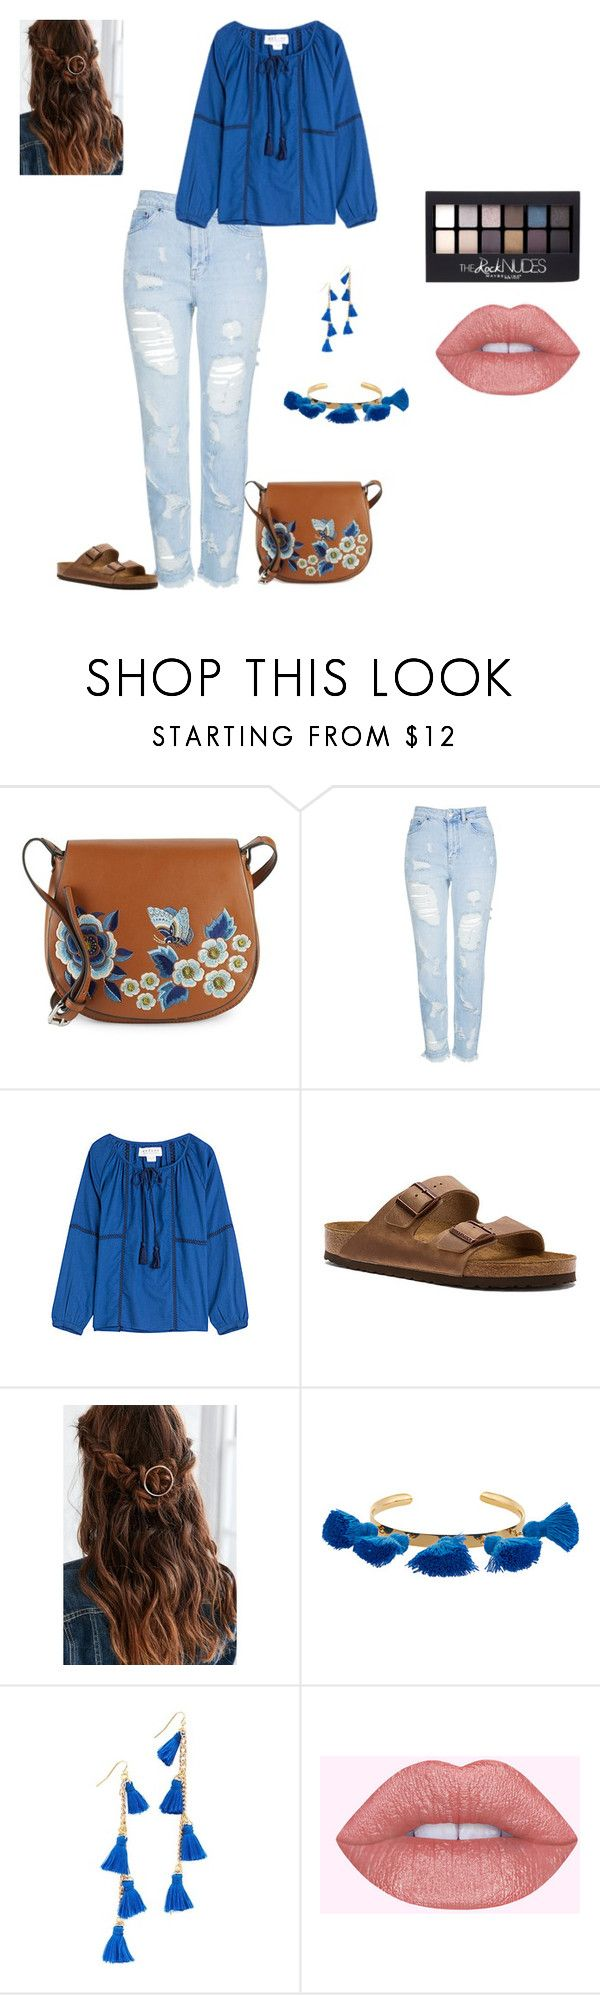 """all about the purse"" by jbillington ❤ liked on Polyvore featuring French Connection, Topshop, Velvet, Birkenstock, Urban Outfitters, Marte Frisnes, Vanessa Mooney, Maybelline, FrenchConnection and saddlebag"